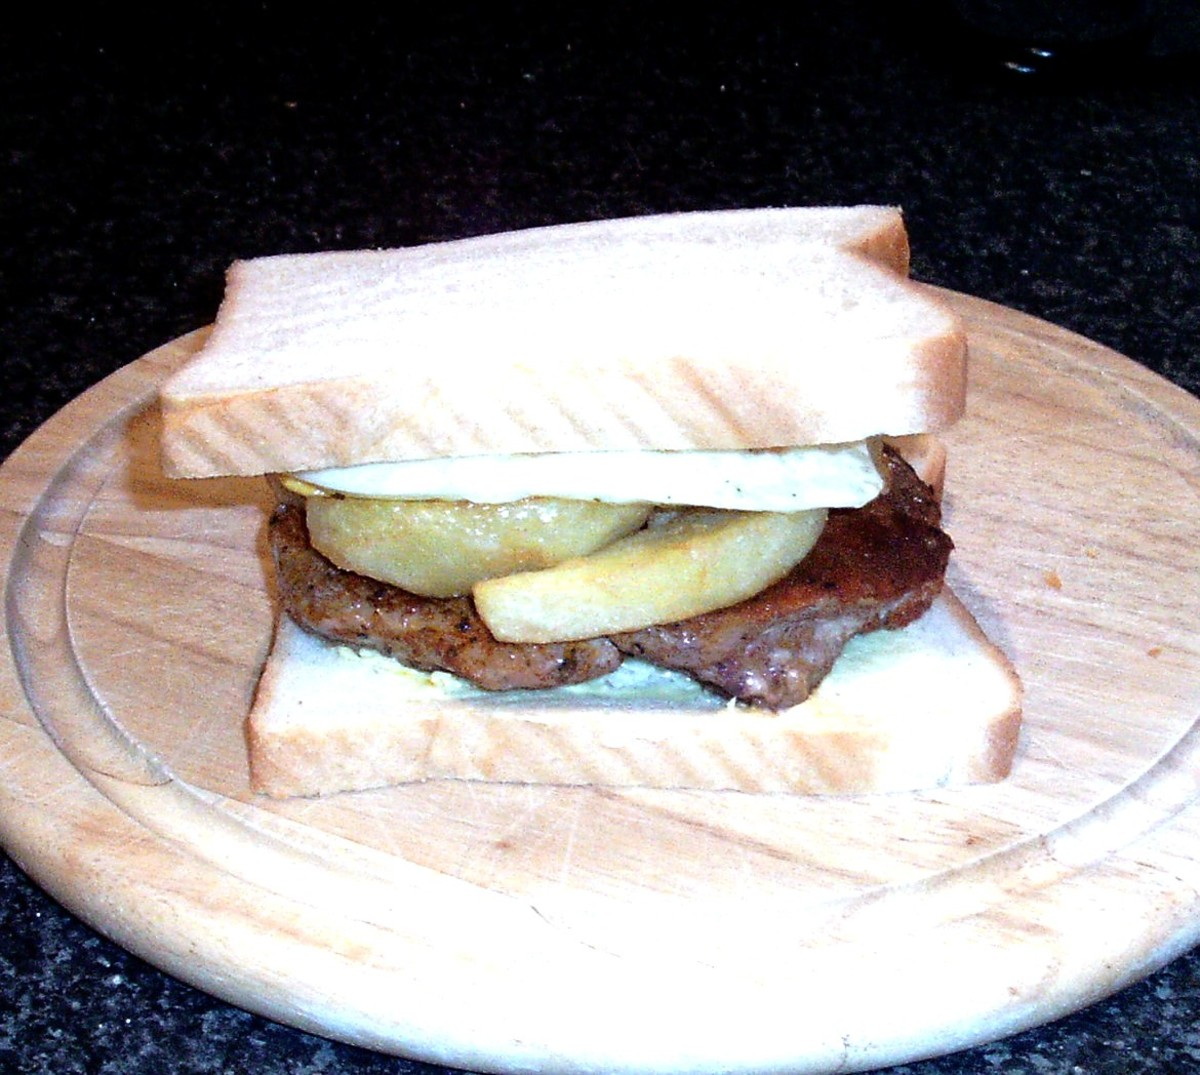 Top is placed on steak, egg and chips sandwich